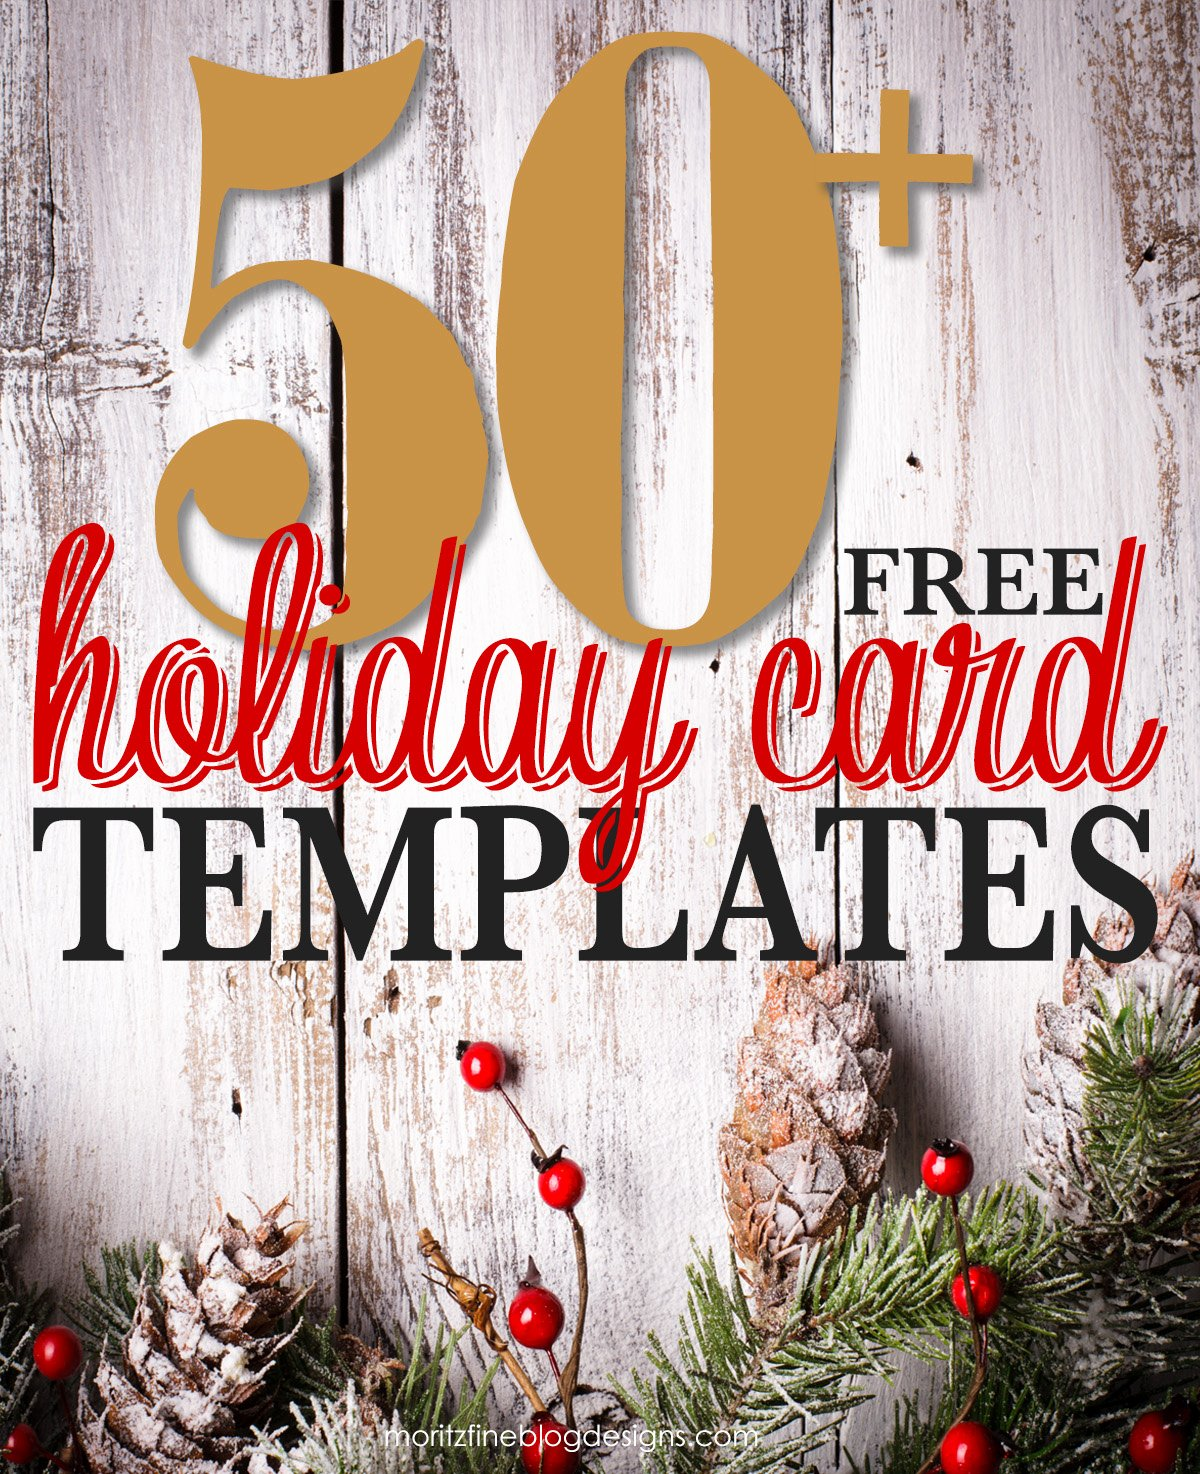 Free Photo Christmas Card Templates Awesome 50 Free Holiday Card Templates